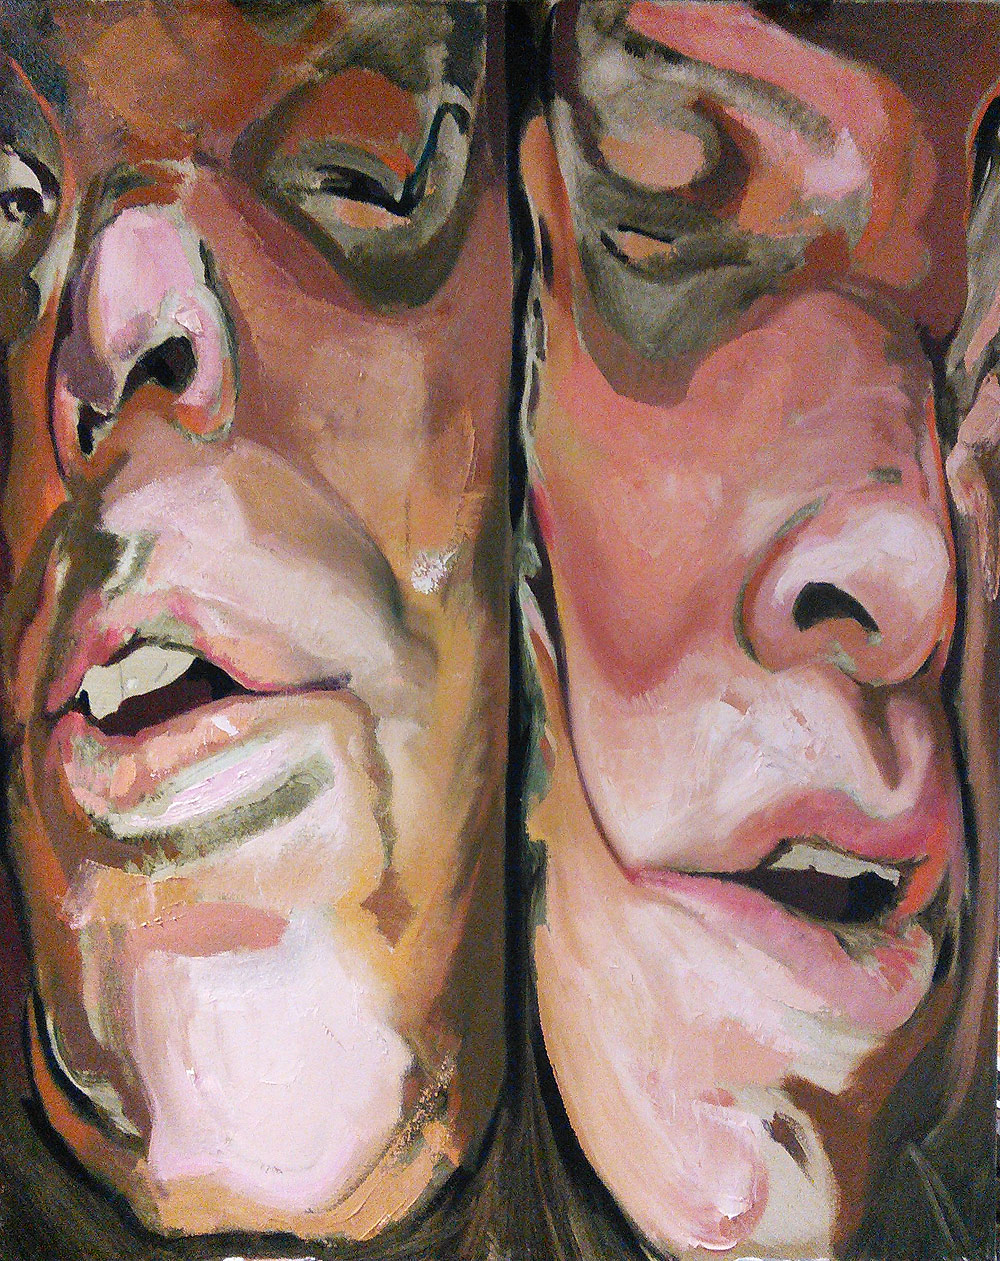 Squeezed - Double portrait - oil on canvas by Scott Hutchison - Layer One